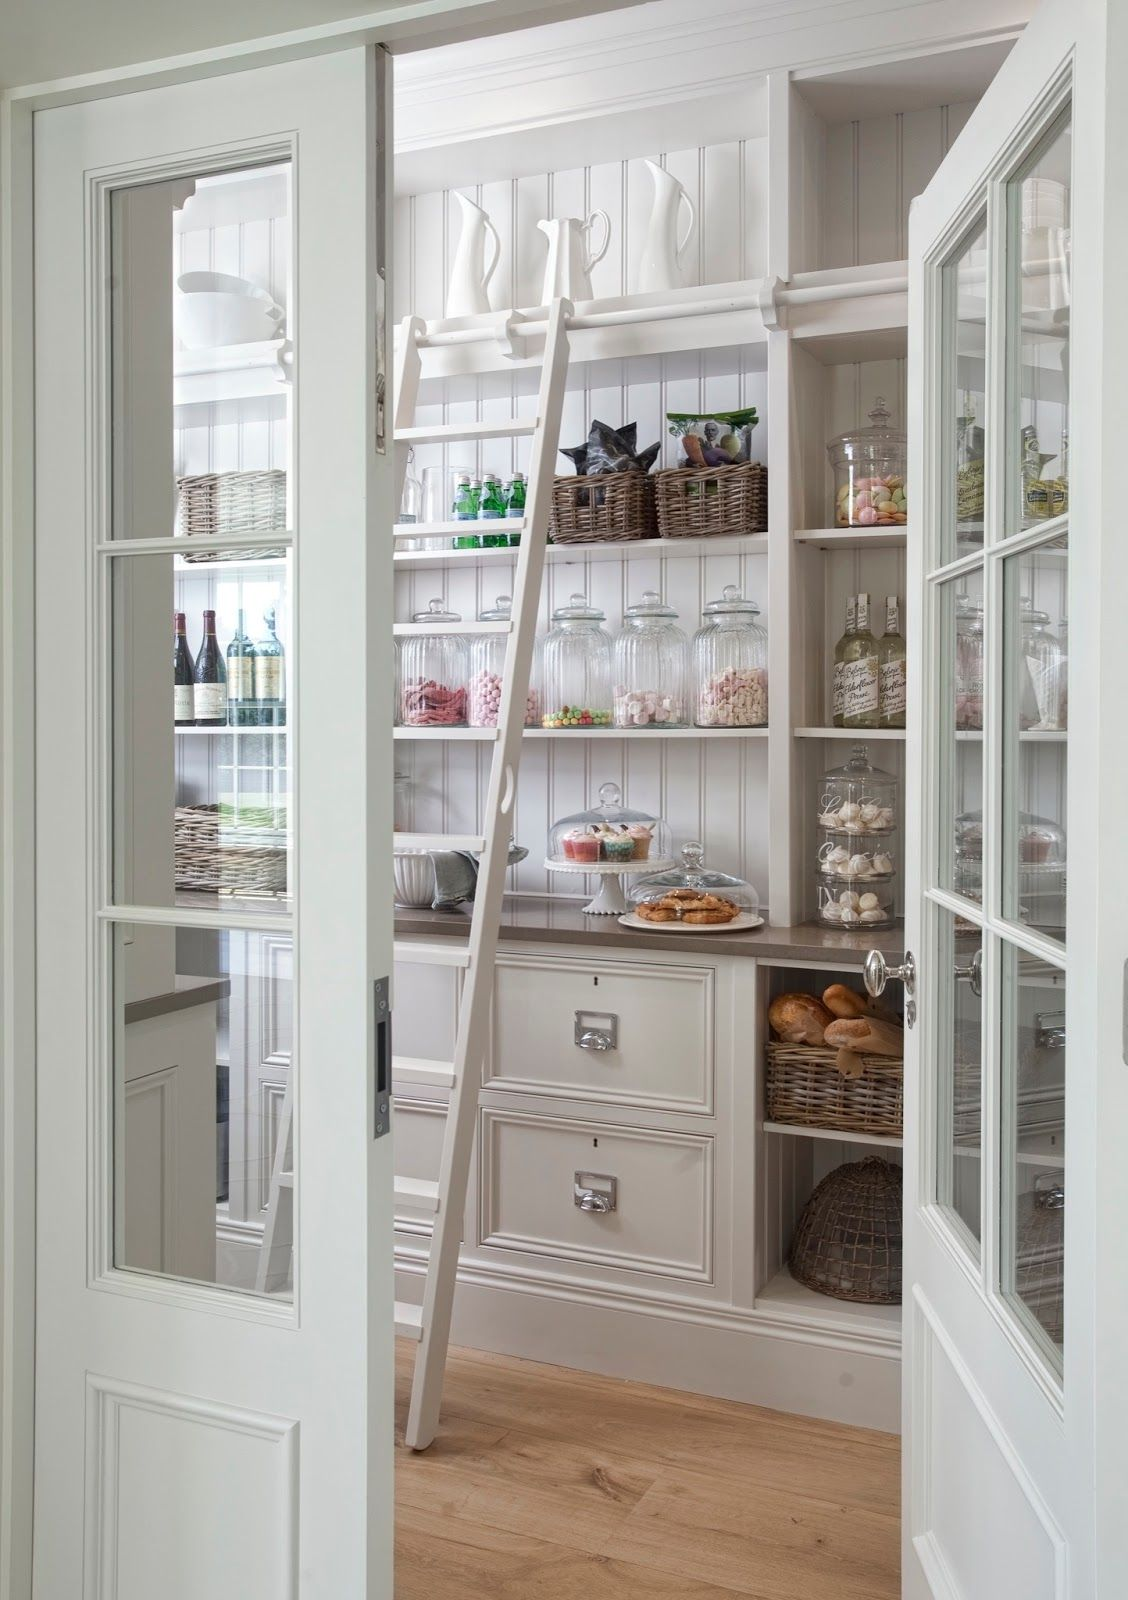 Inspiration And Designing Of The Vintage Style Pantry Diy Design Fanatic Pantry Design Home Dream Kitchen